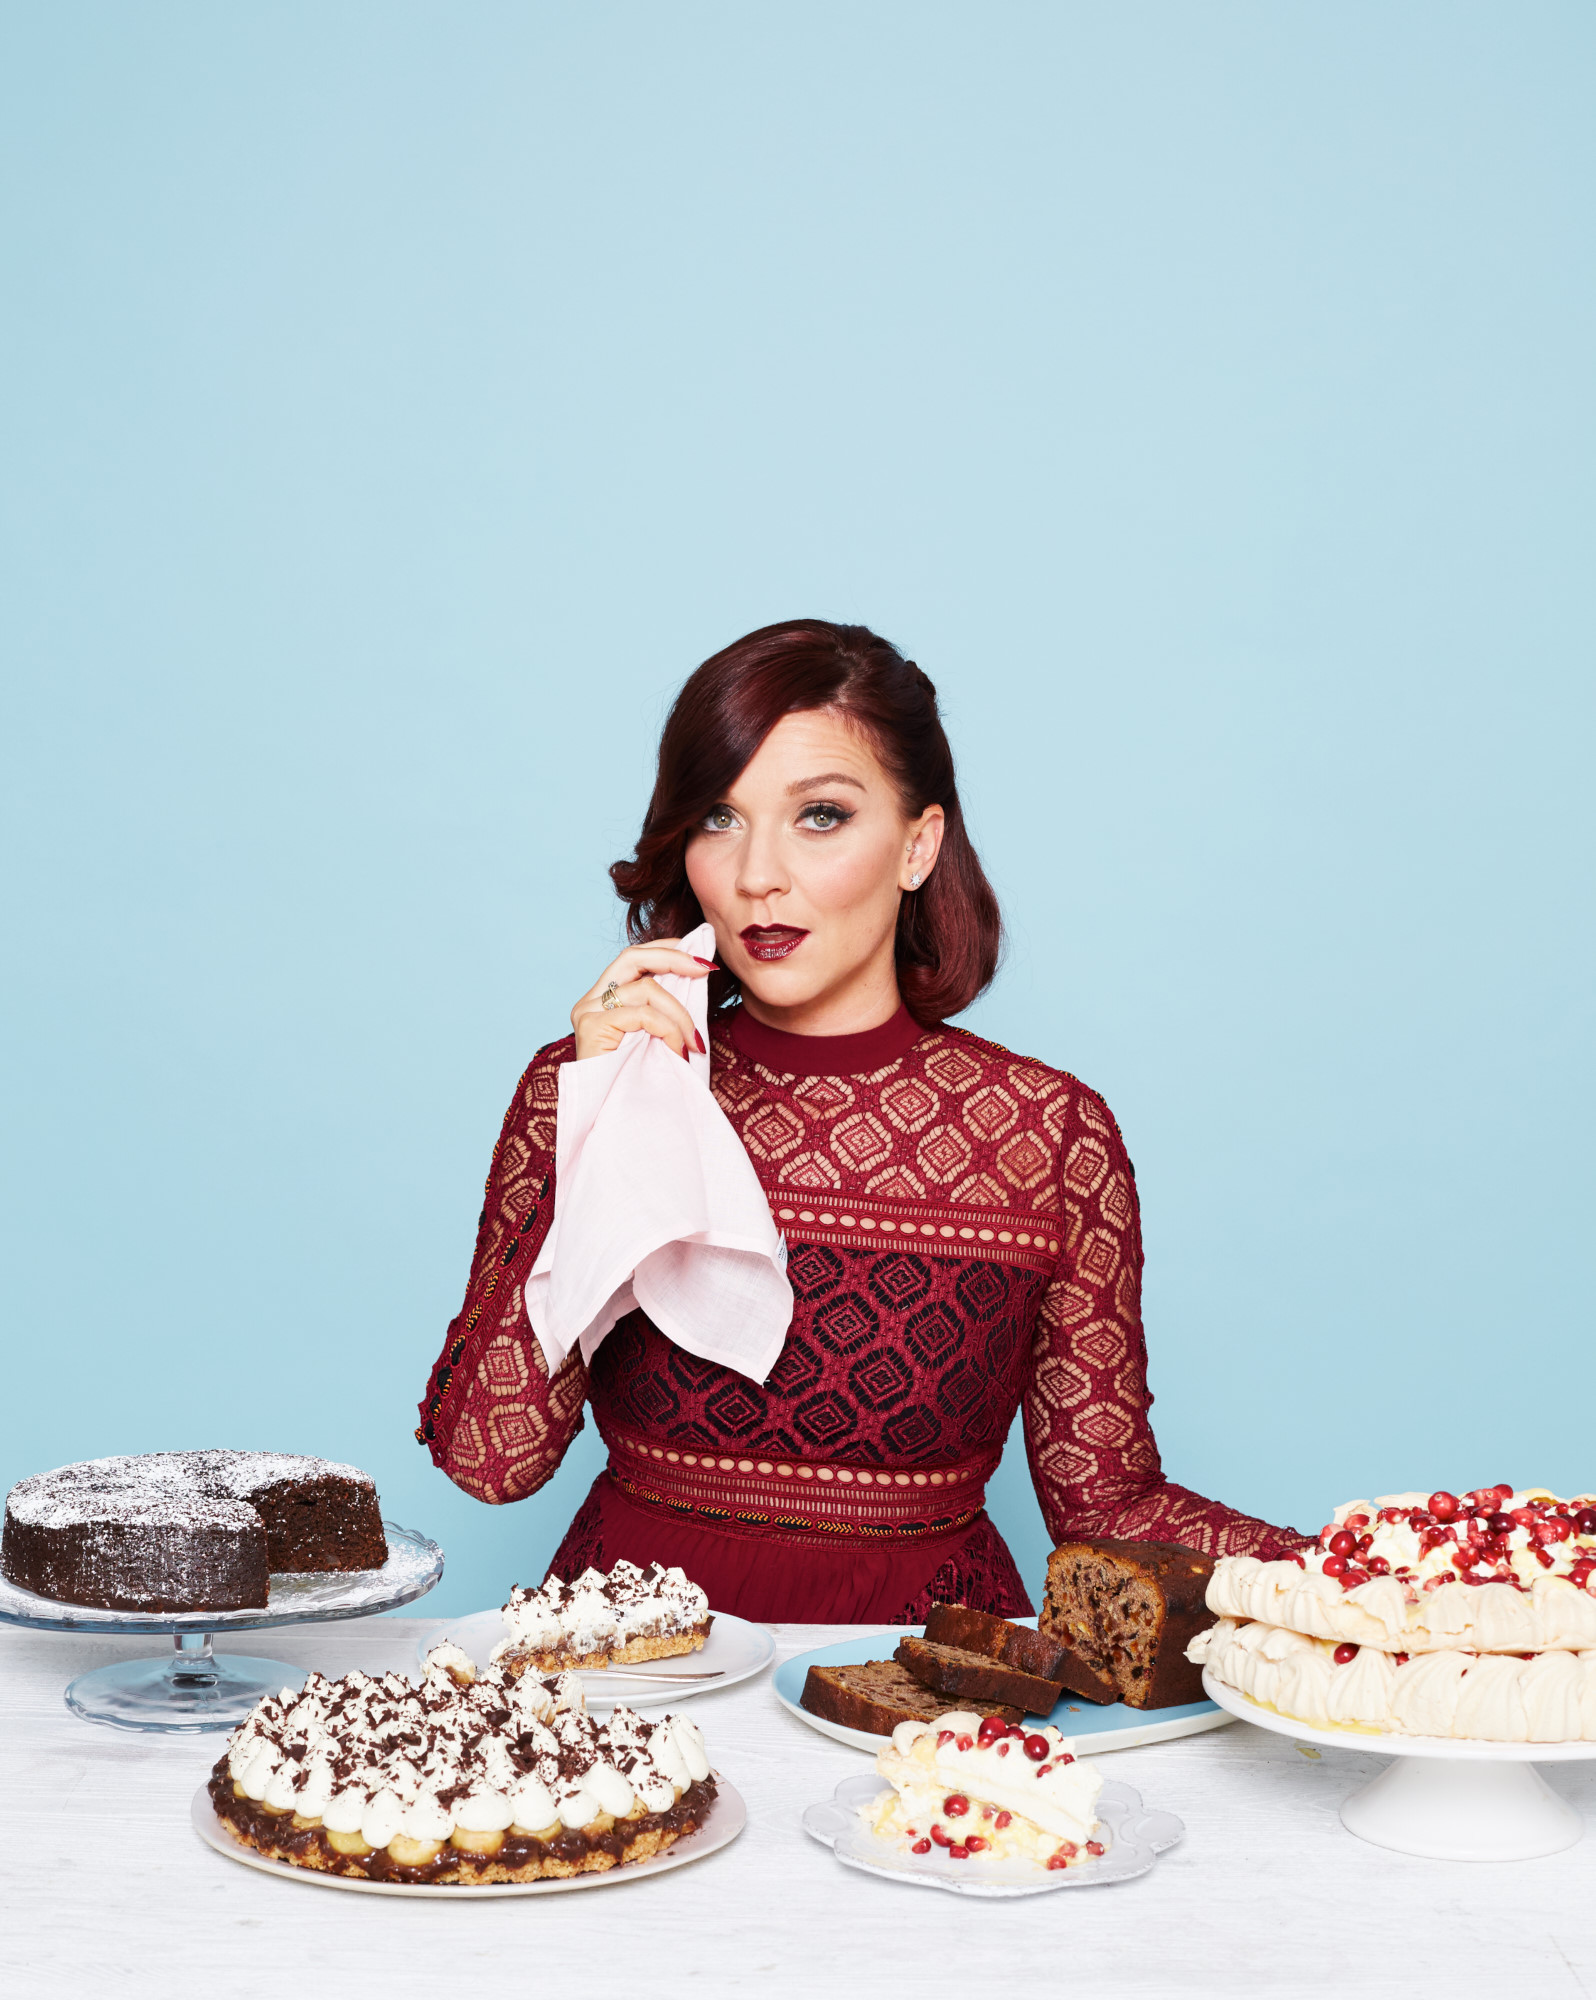 THE SUNDAY TIMES DISH MAGAZINE Candice Brown